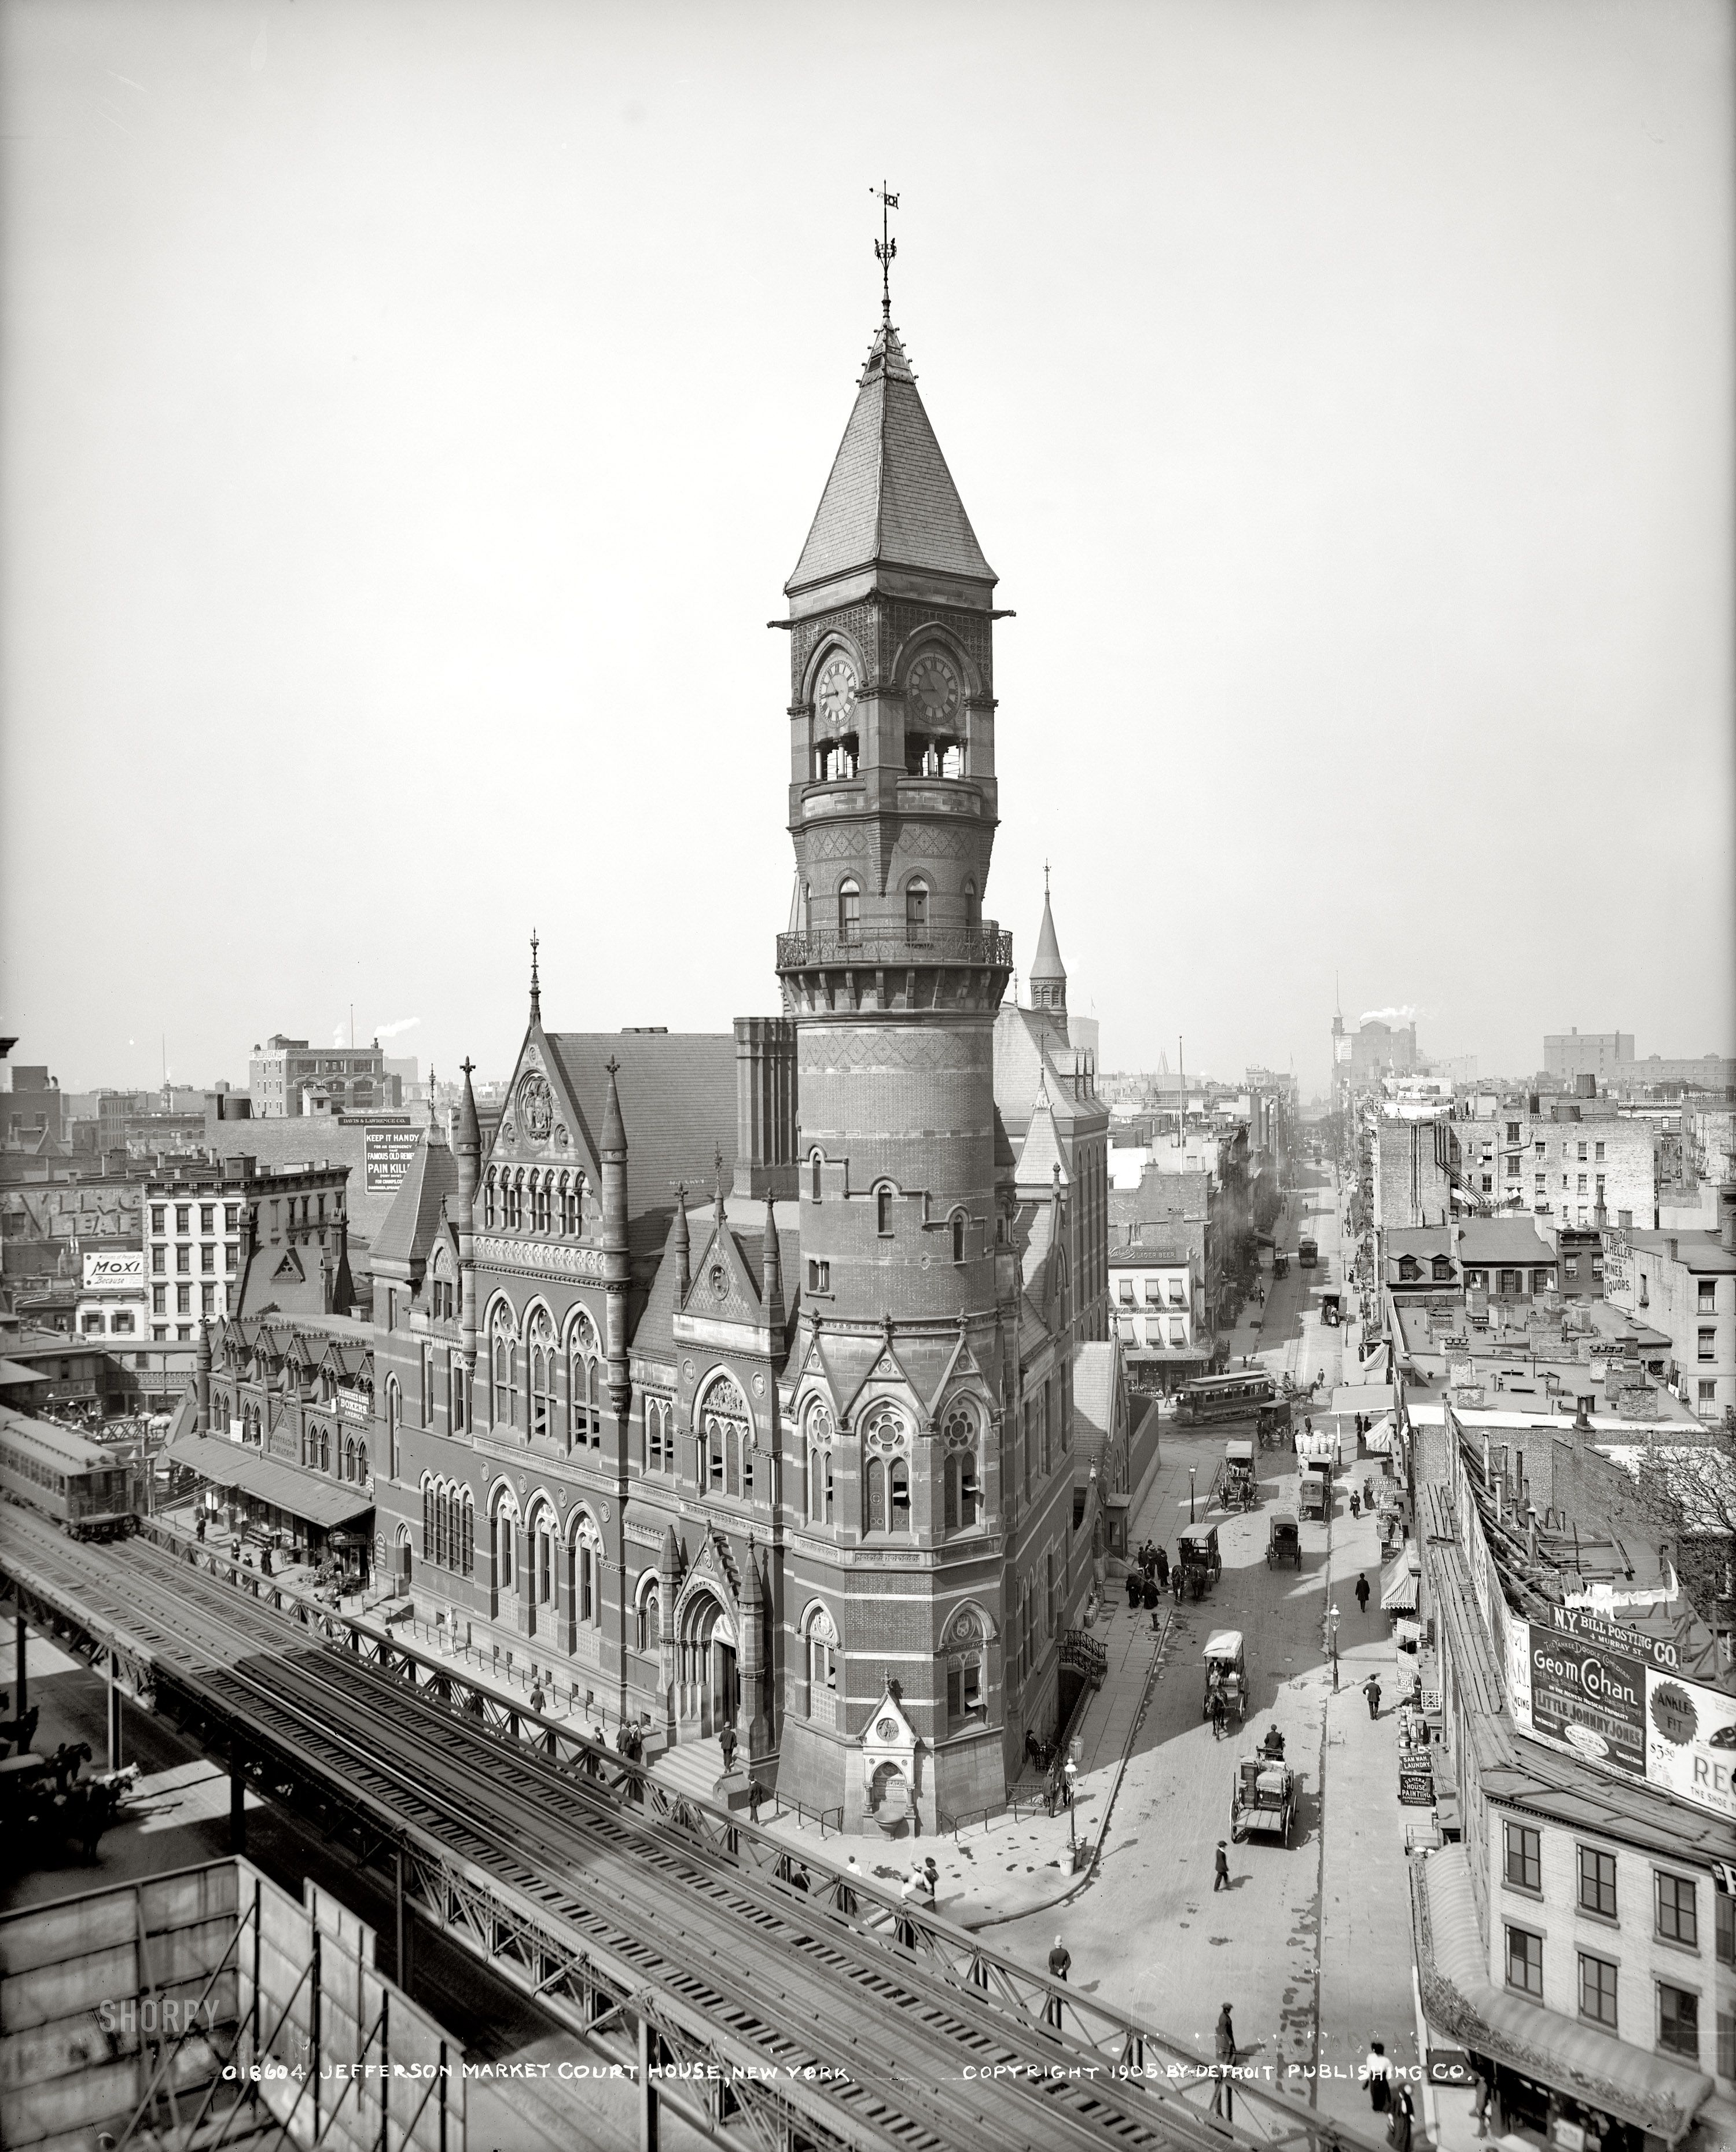 NYC 1905 Jefferson Market, Courthouse, also had been a fire tower.  Looking West 10th Street @ 6th Avenue, Greenwich Village-now a Museum